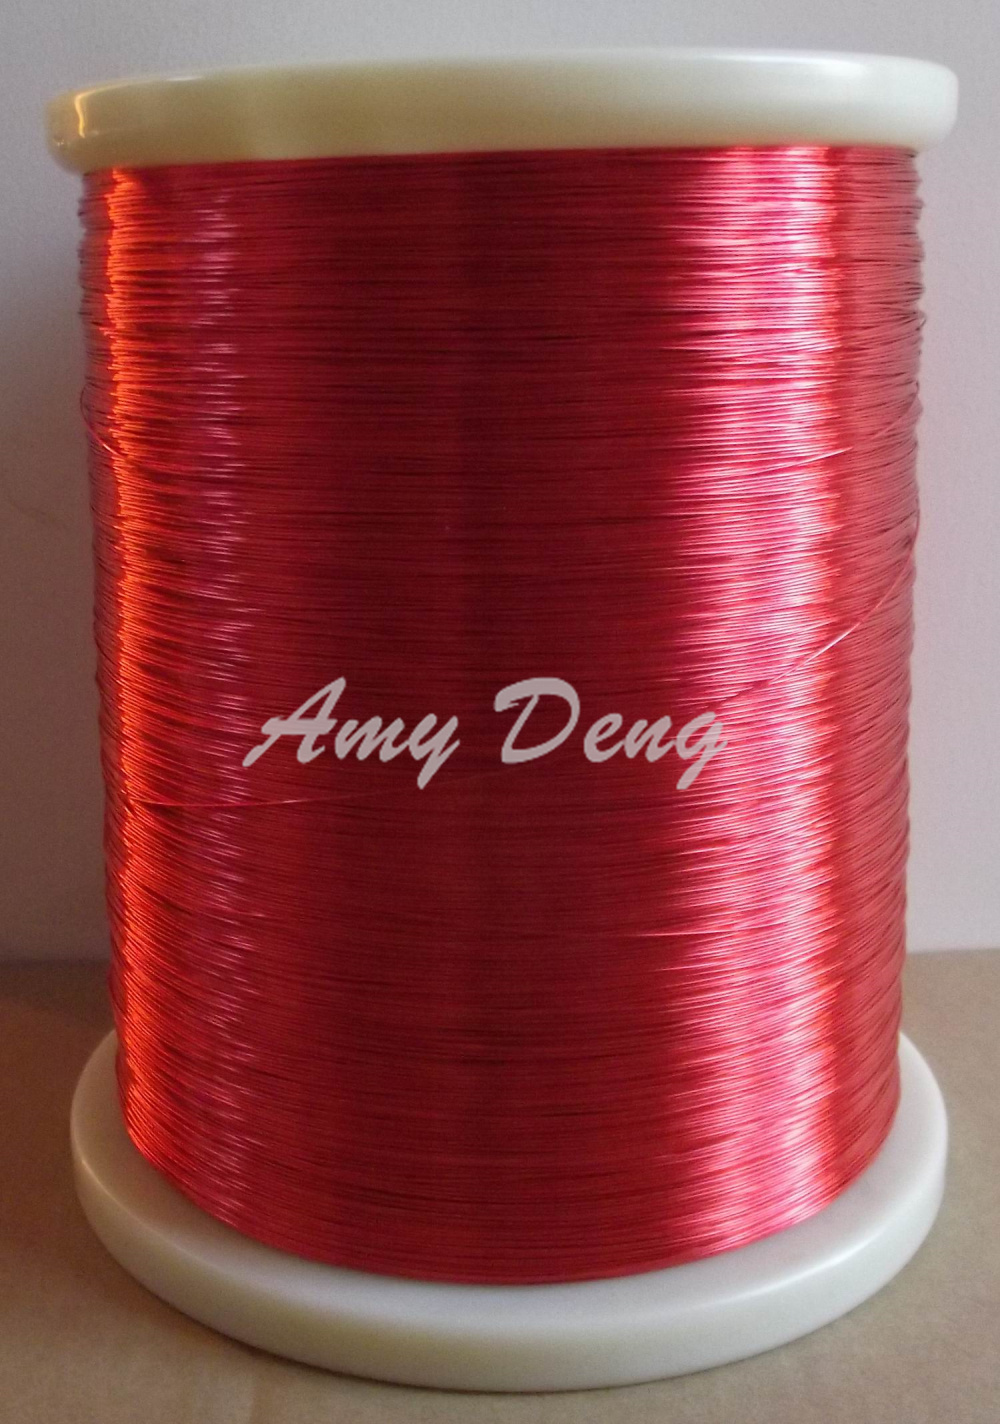 200meters/lot  0.6 Mm Red New Polyurethane Enamel Covered Wire QA-1-155 Copper 2uew